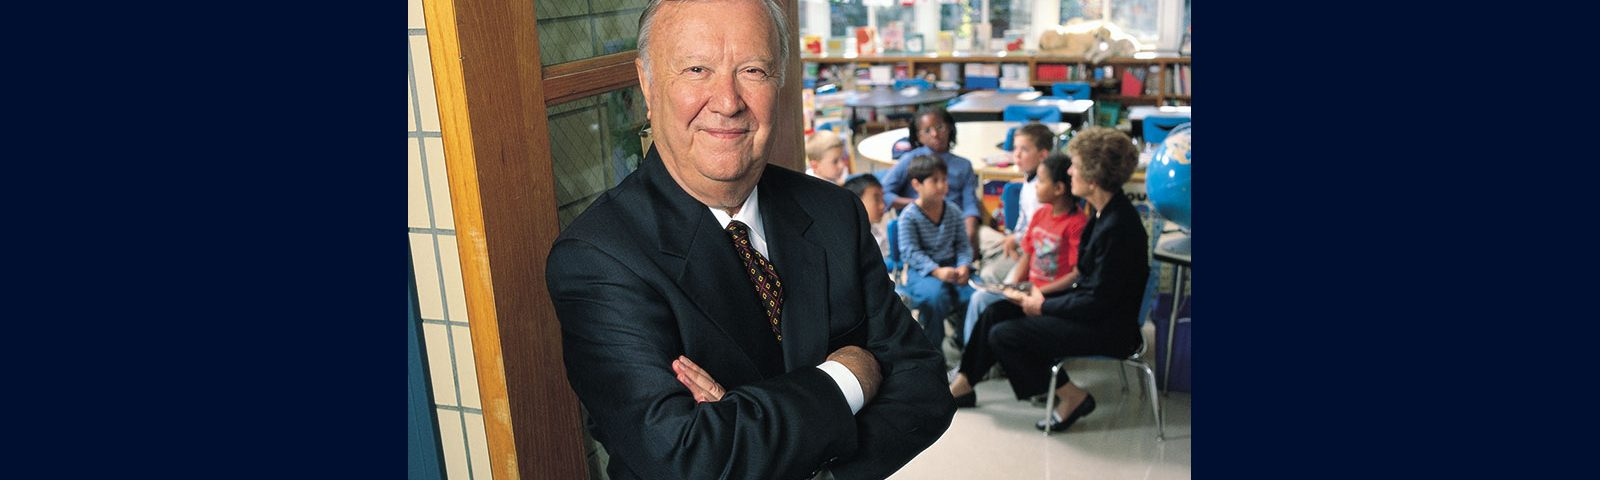 Ray Neag '56 (CLAS) stands outside of a classroom